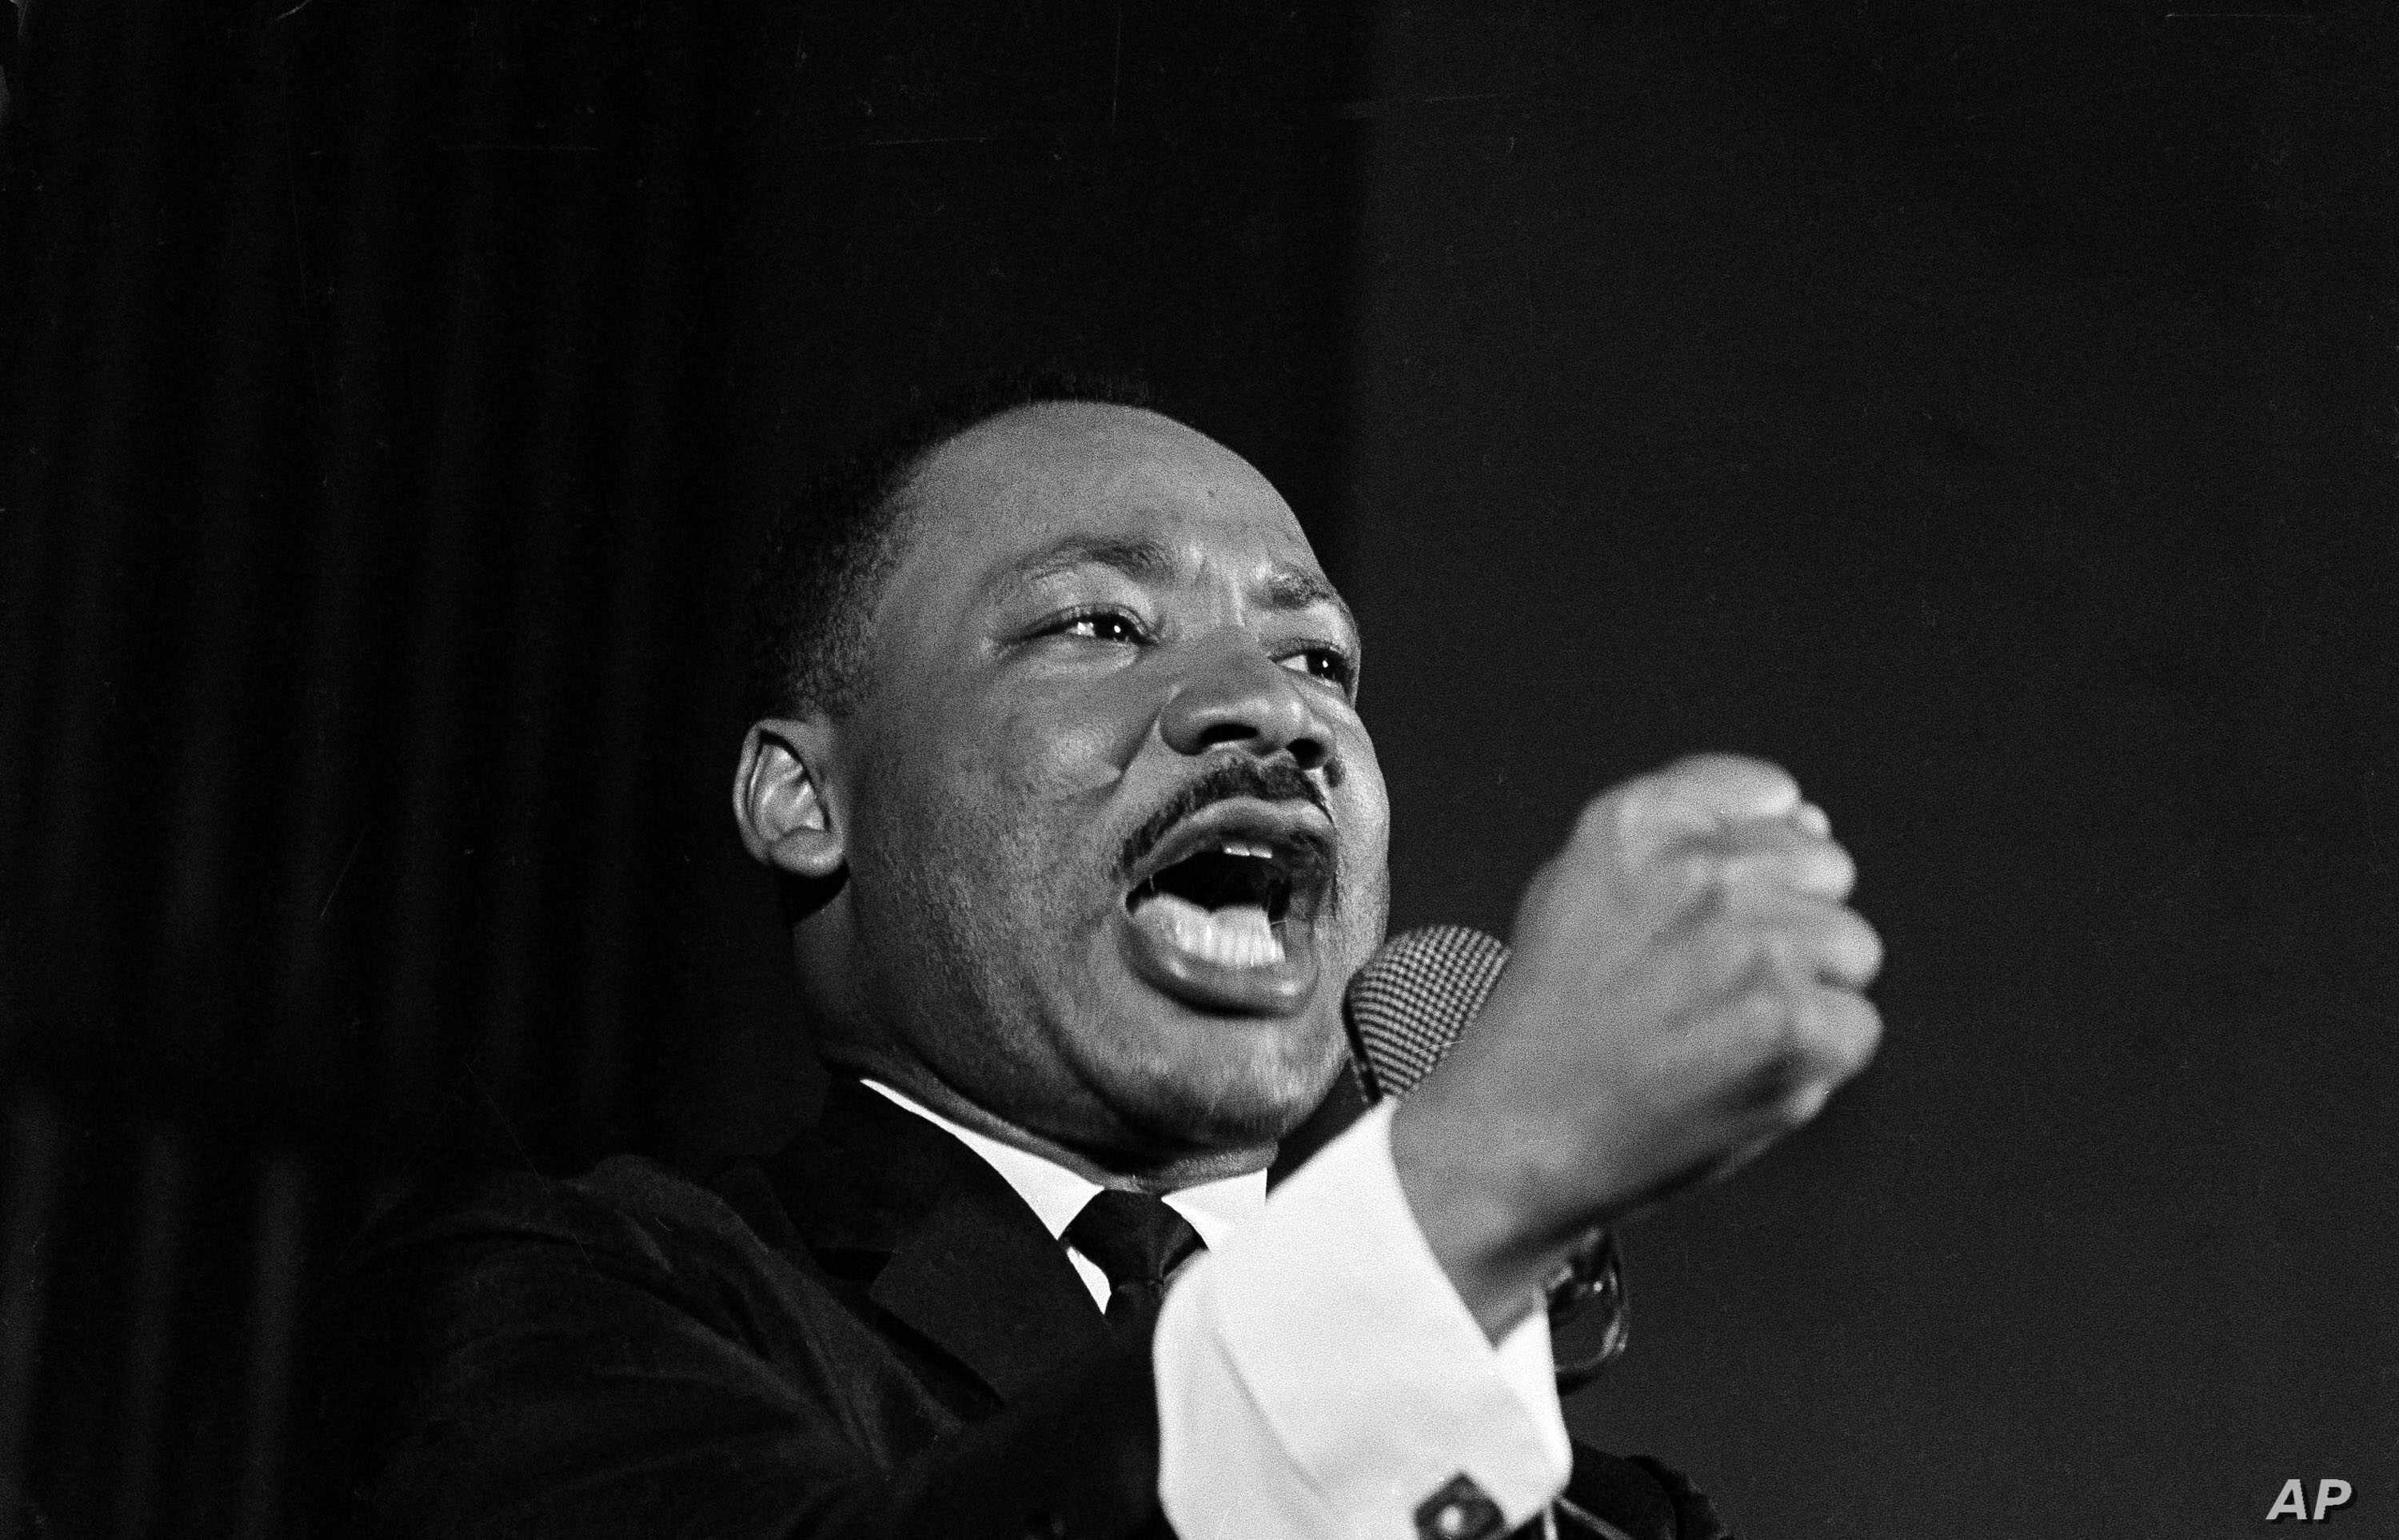 Timeline Of Mlk Assassination And Investigation Into His Killing Voice Of America English